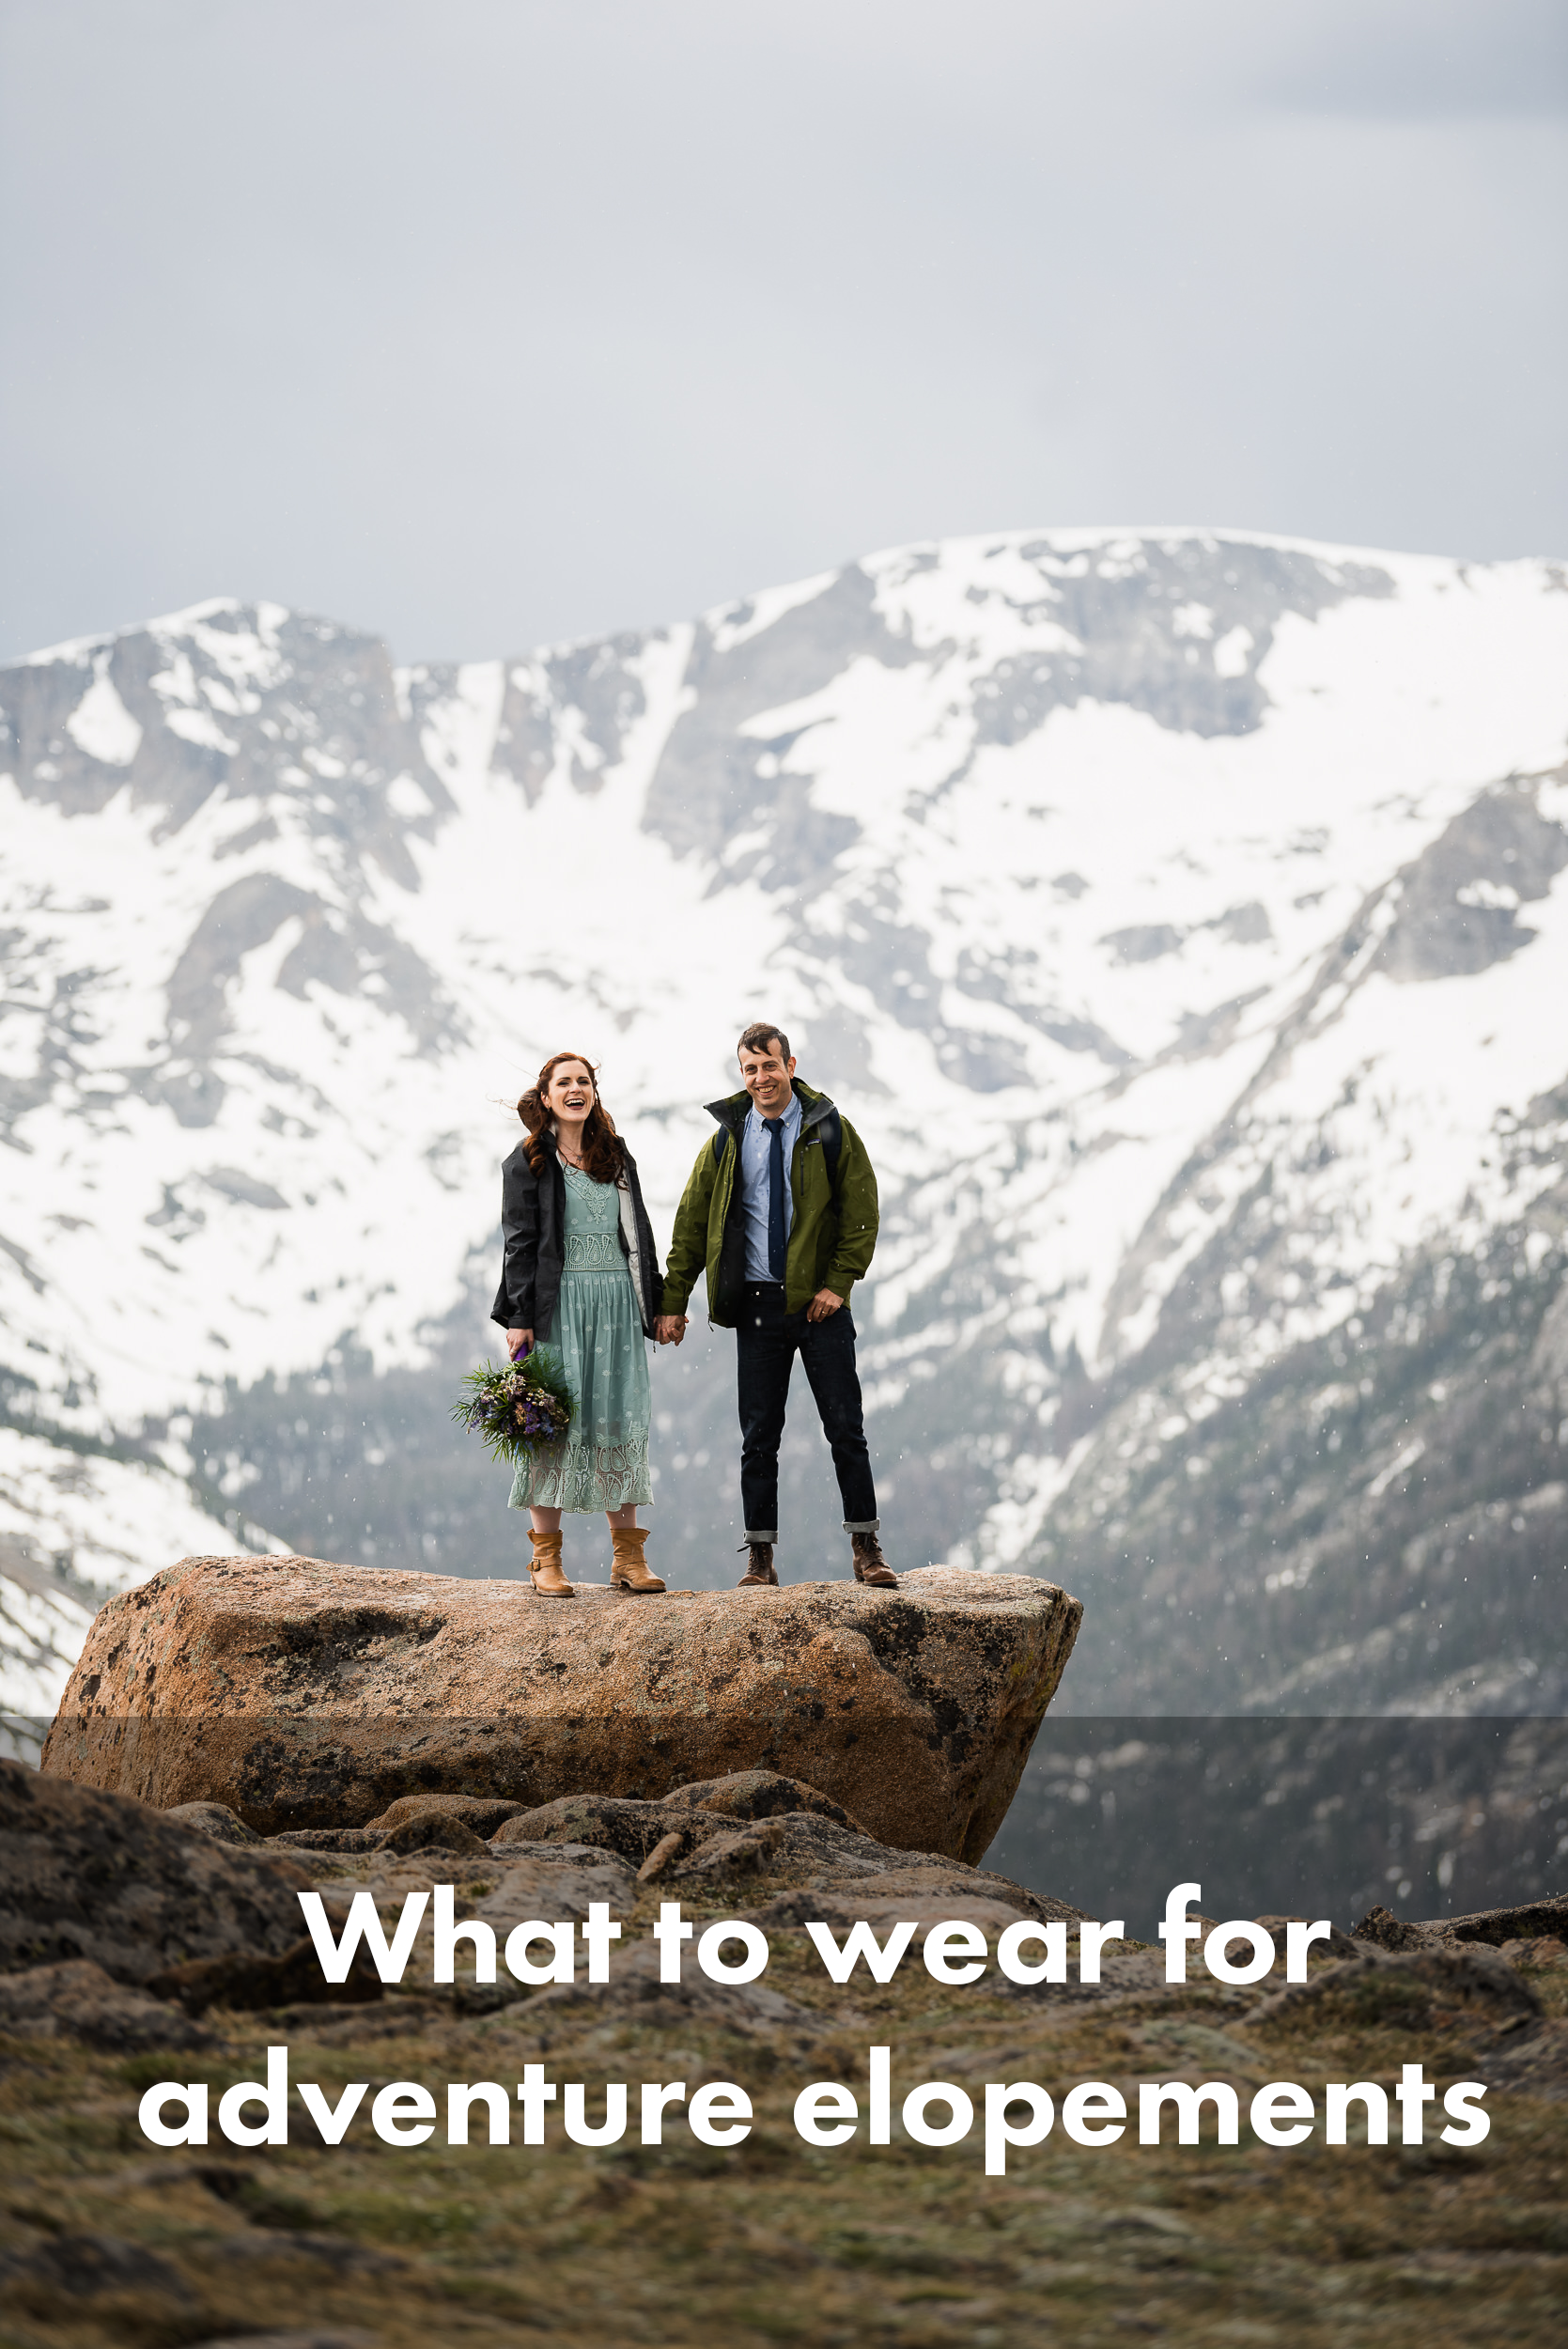 A bride and groom stand side by side on a large flat rock, framed by dramatic snow-covered peaks. They're holding hands, the bride holding flowers and the groom with his thumb in his pocket. The bride on left is wearing a calf-length dress and boots, with a jacket over her dress. The groom is wearing a buttoned shirt, tie, cuffed jeans, and boots, along with a jacket. The wind is blowing, it's cold, but they're laughing.